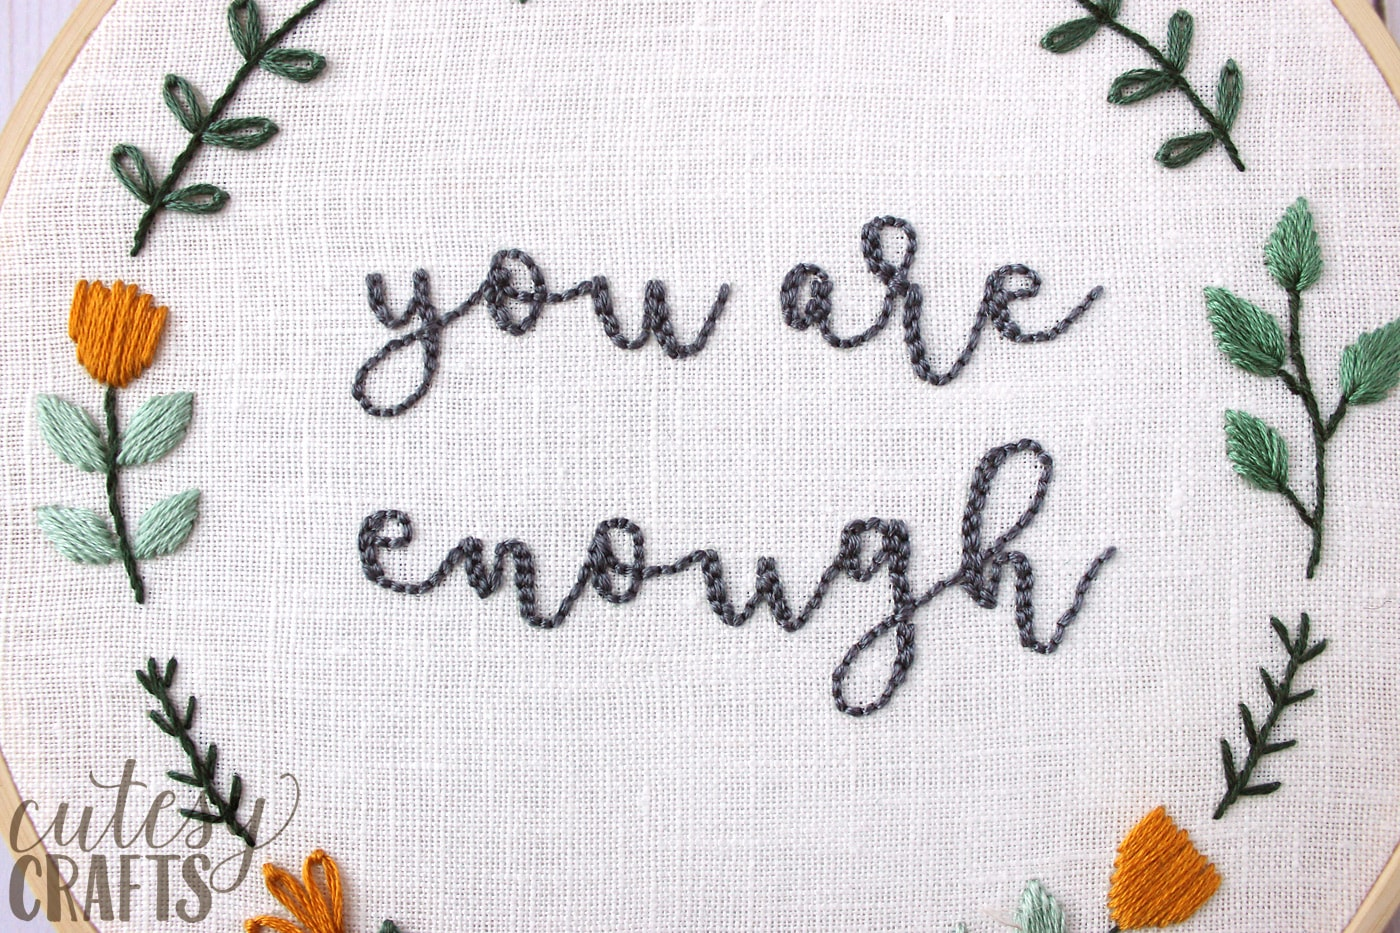 "Free Hand Embroidery Pattern for an inspirational quote embroidery hoop - ""you are enough"" - #embroidery #handEmbroidery #embroiderystitches #embroiderypattern"